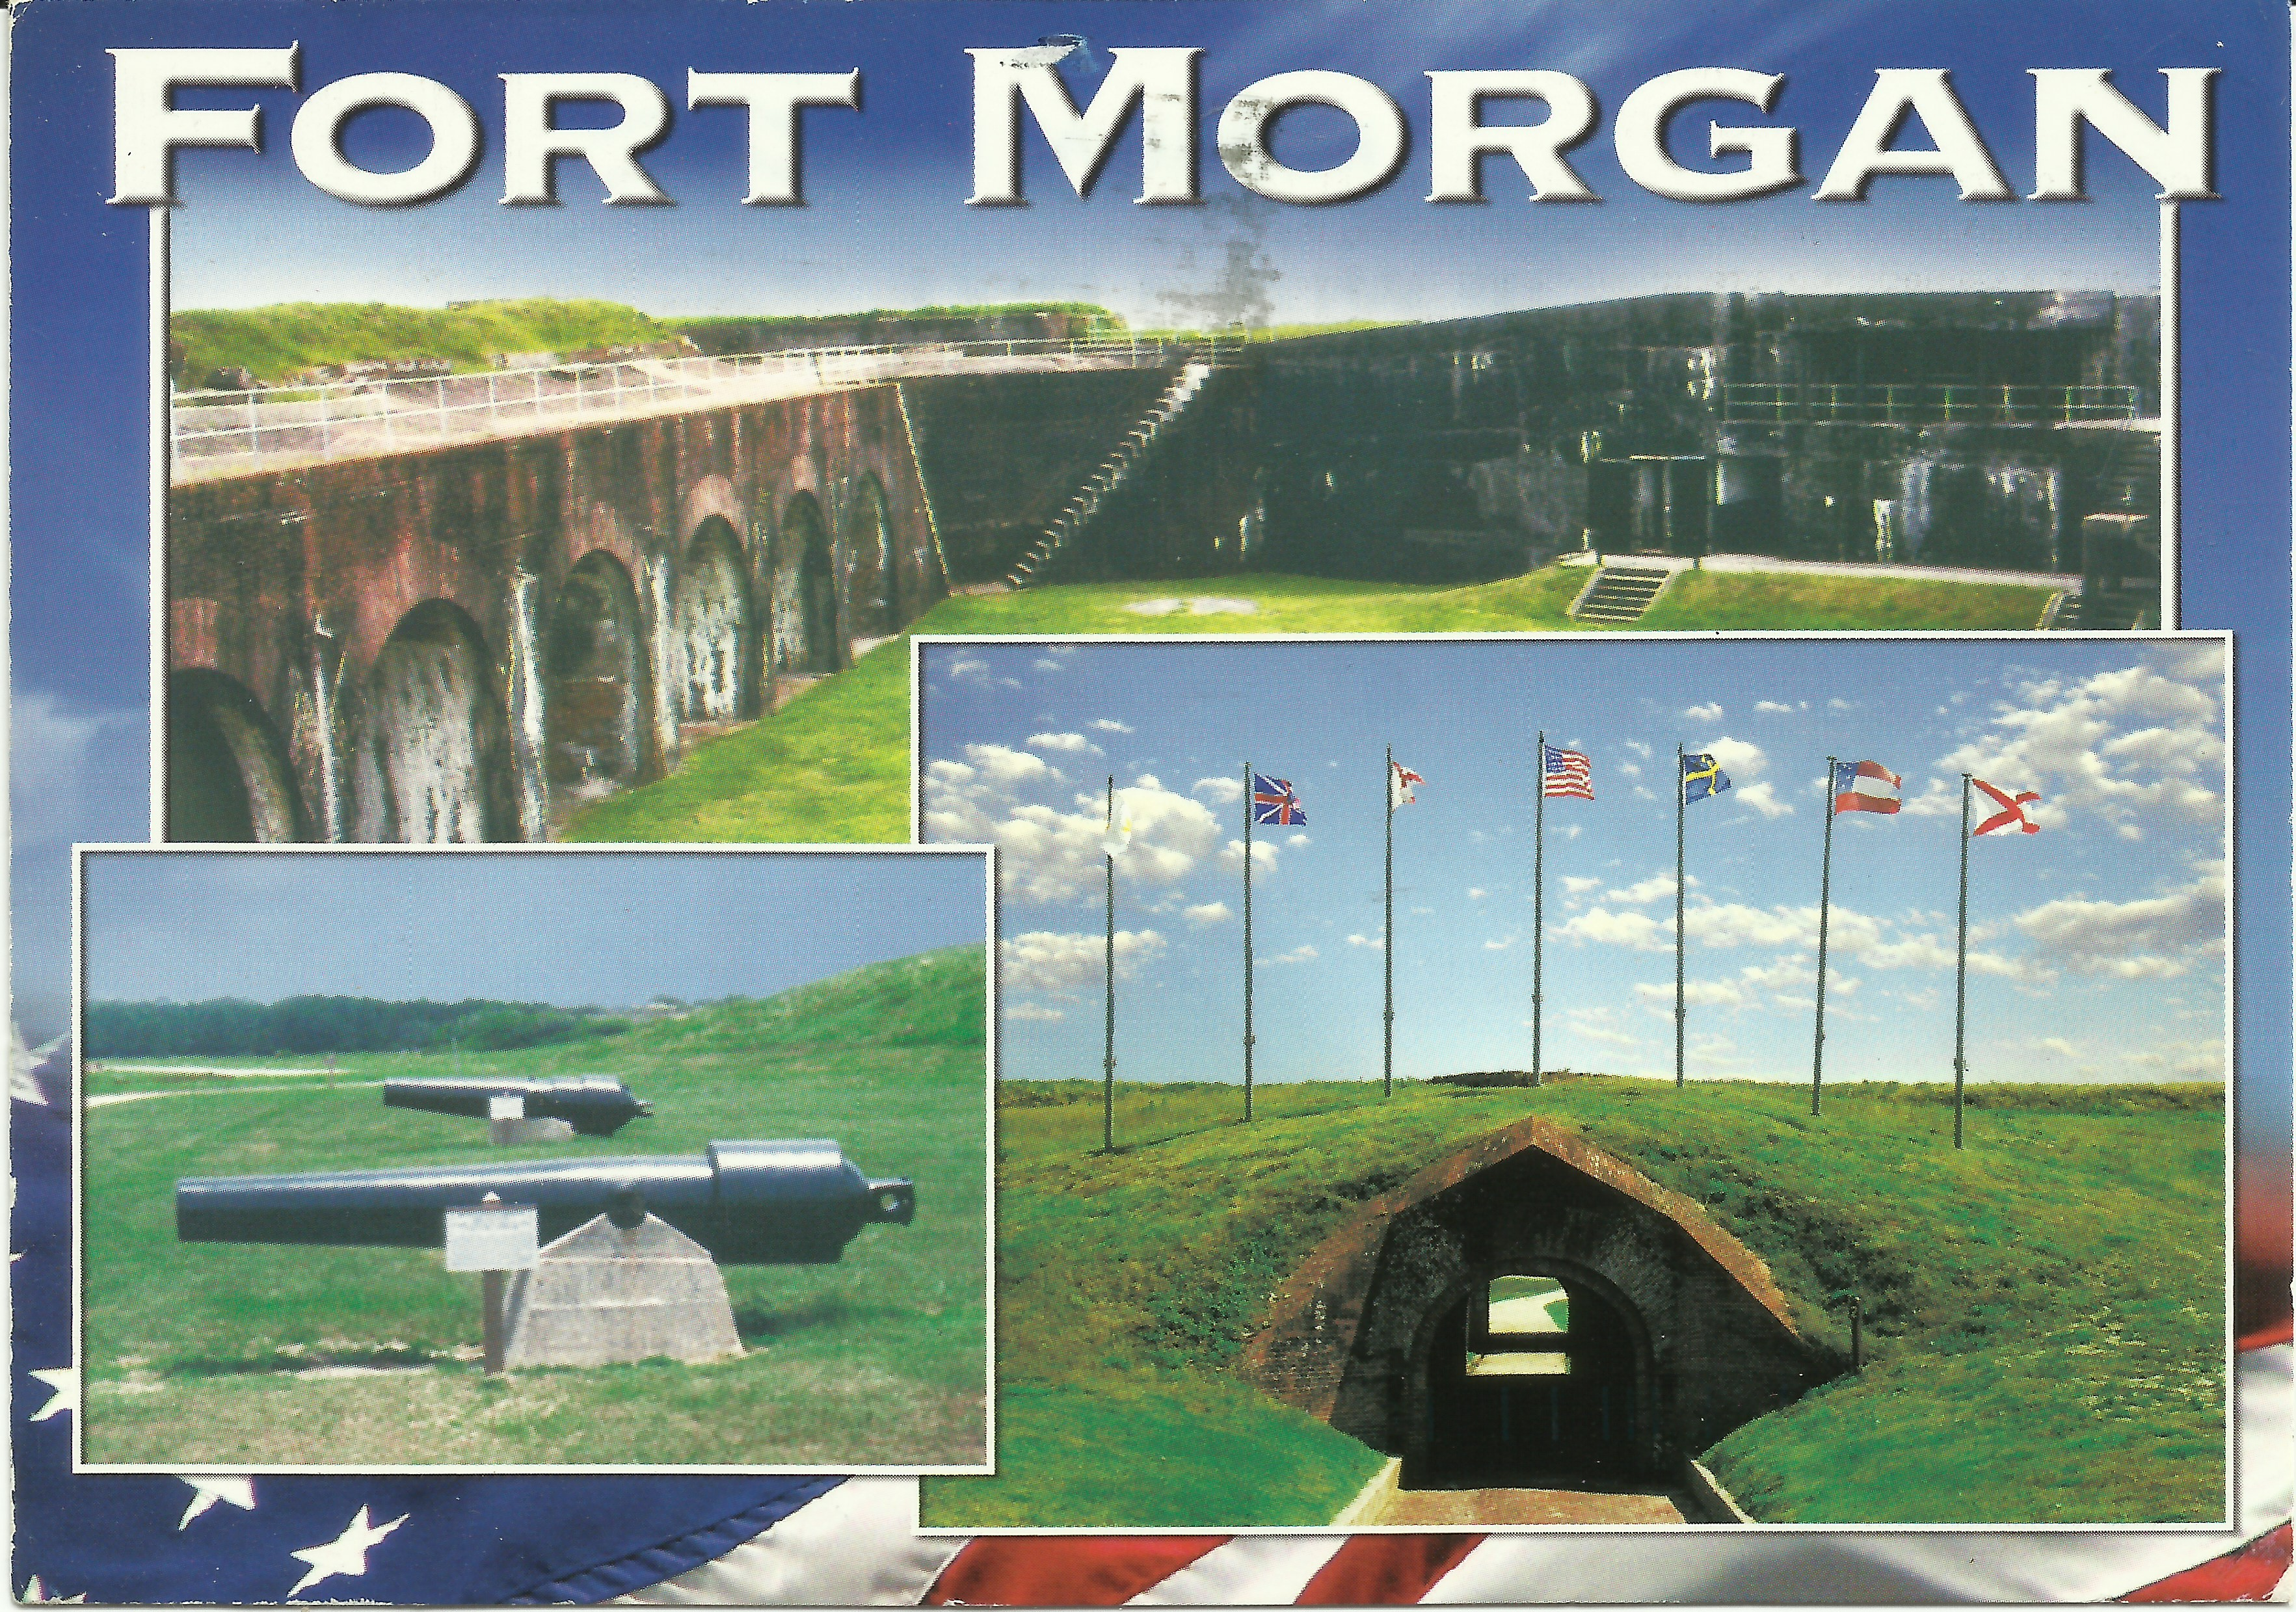 Fort Morgan, Mobile Bay